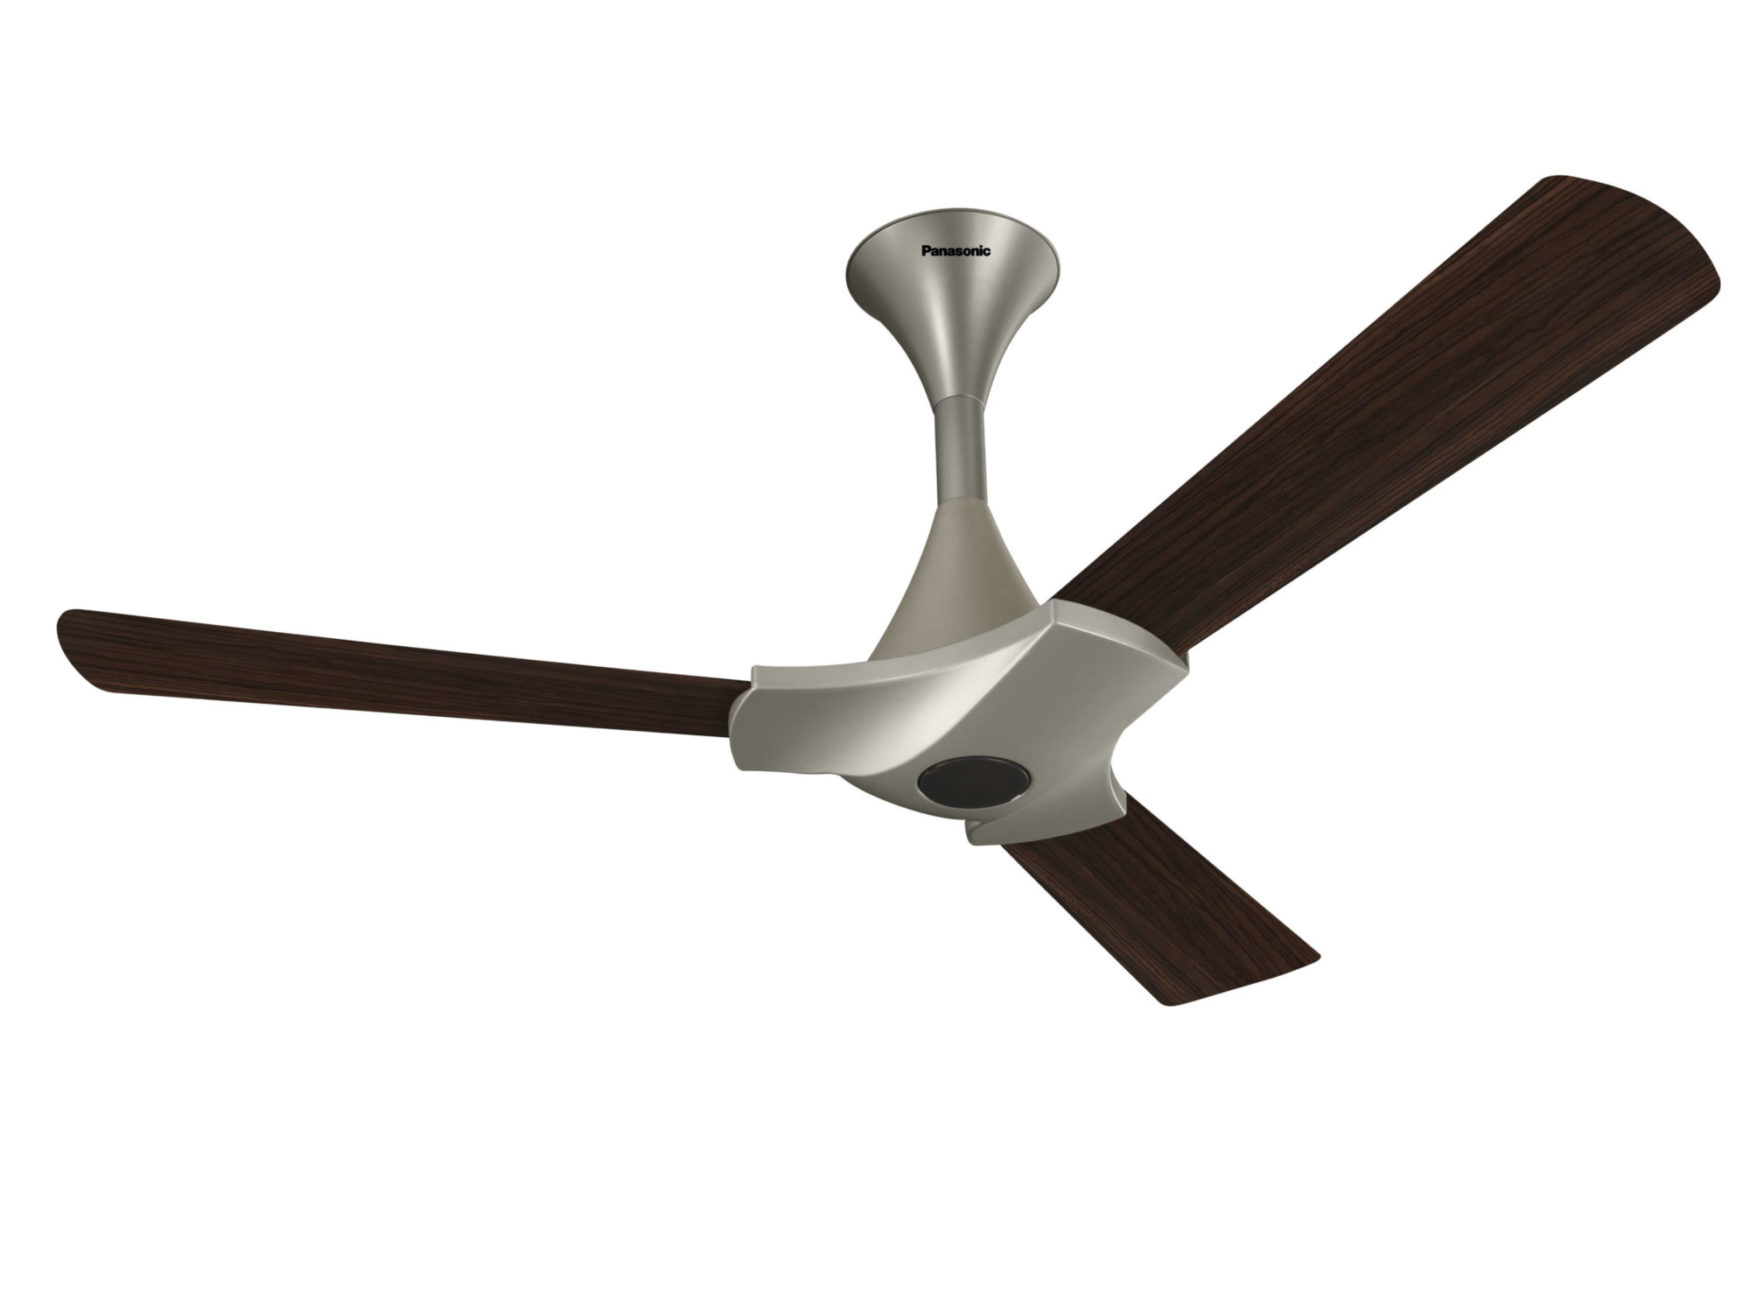 Panosonic Anchor Fan